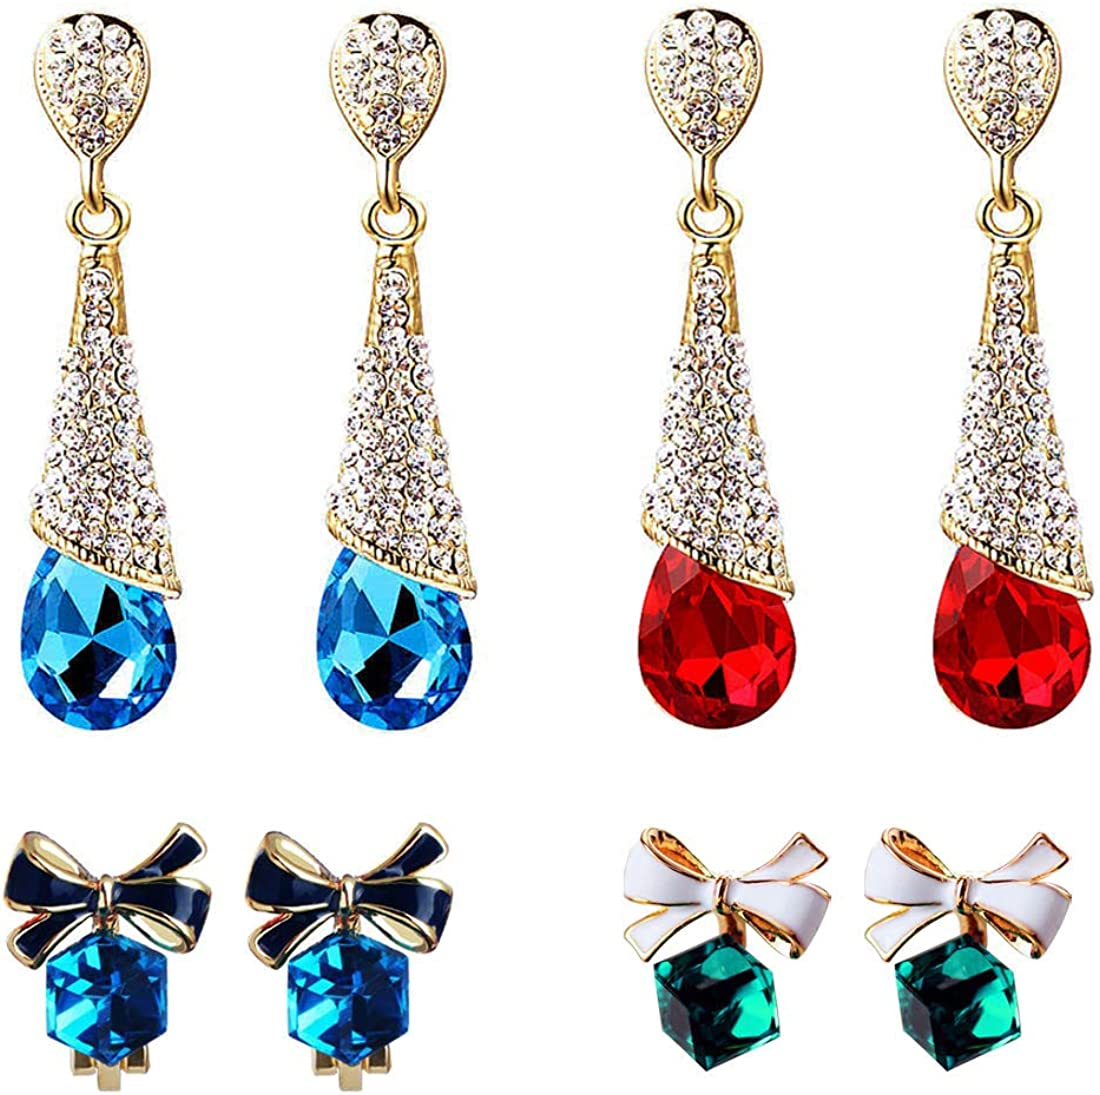 Clip On Earrings Set, Non Pierced Earrings Drop/Cubic Crystal Ear Studs Clips Bow for Ladies on Wedding Party and Leisure Wearing(4 Pair)